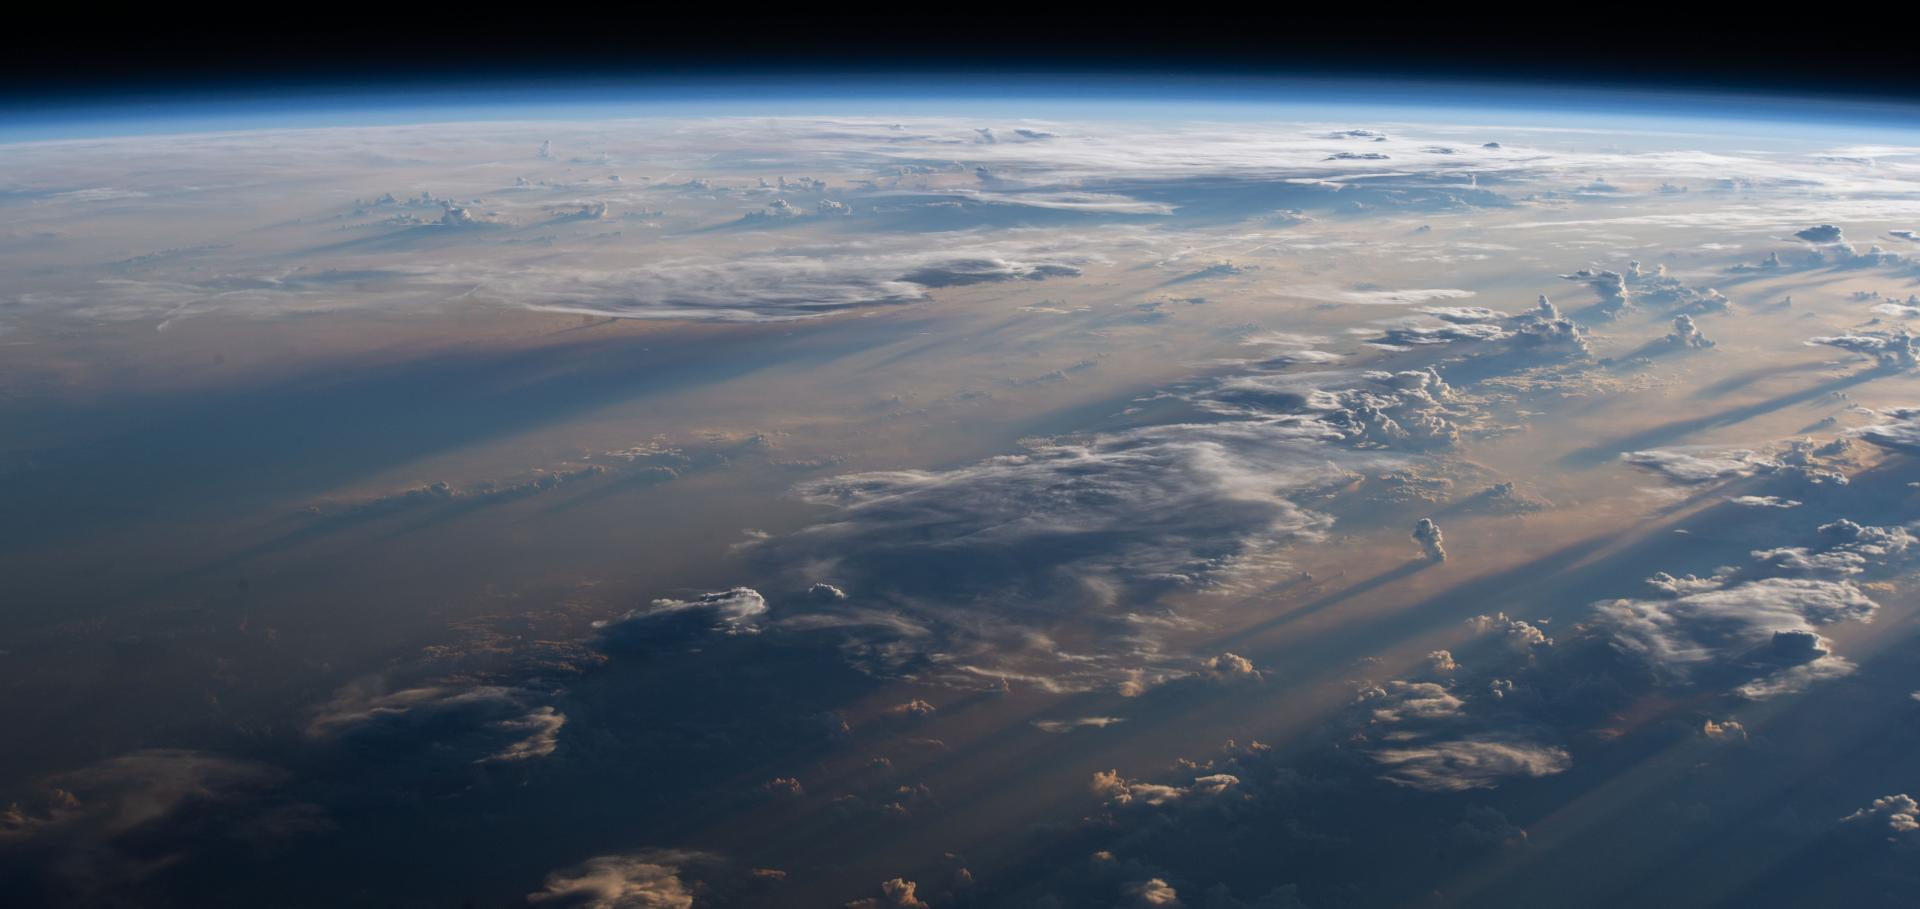 The Earth's atmosphere from space